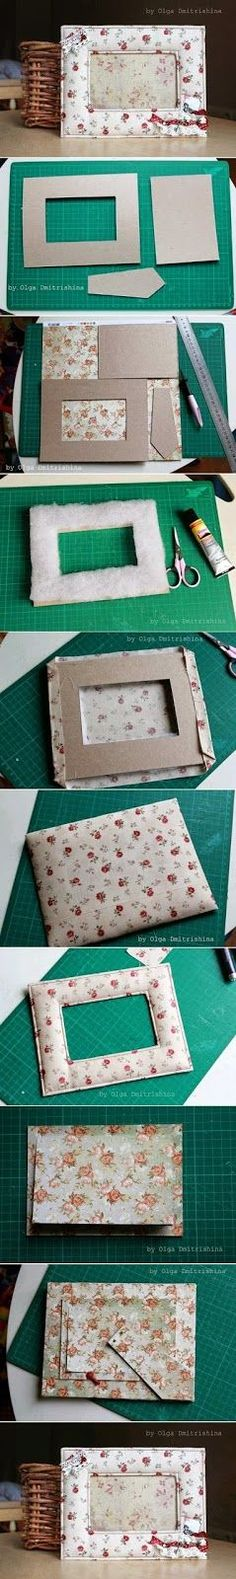 My DIY Projects: Easy Way To Make a Picture ... | Maravilhas da Natur…